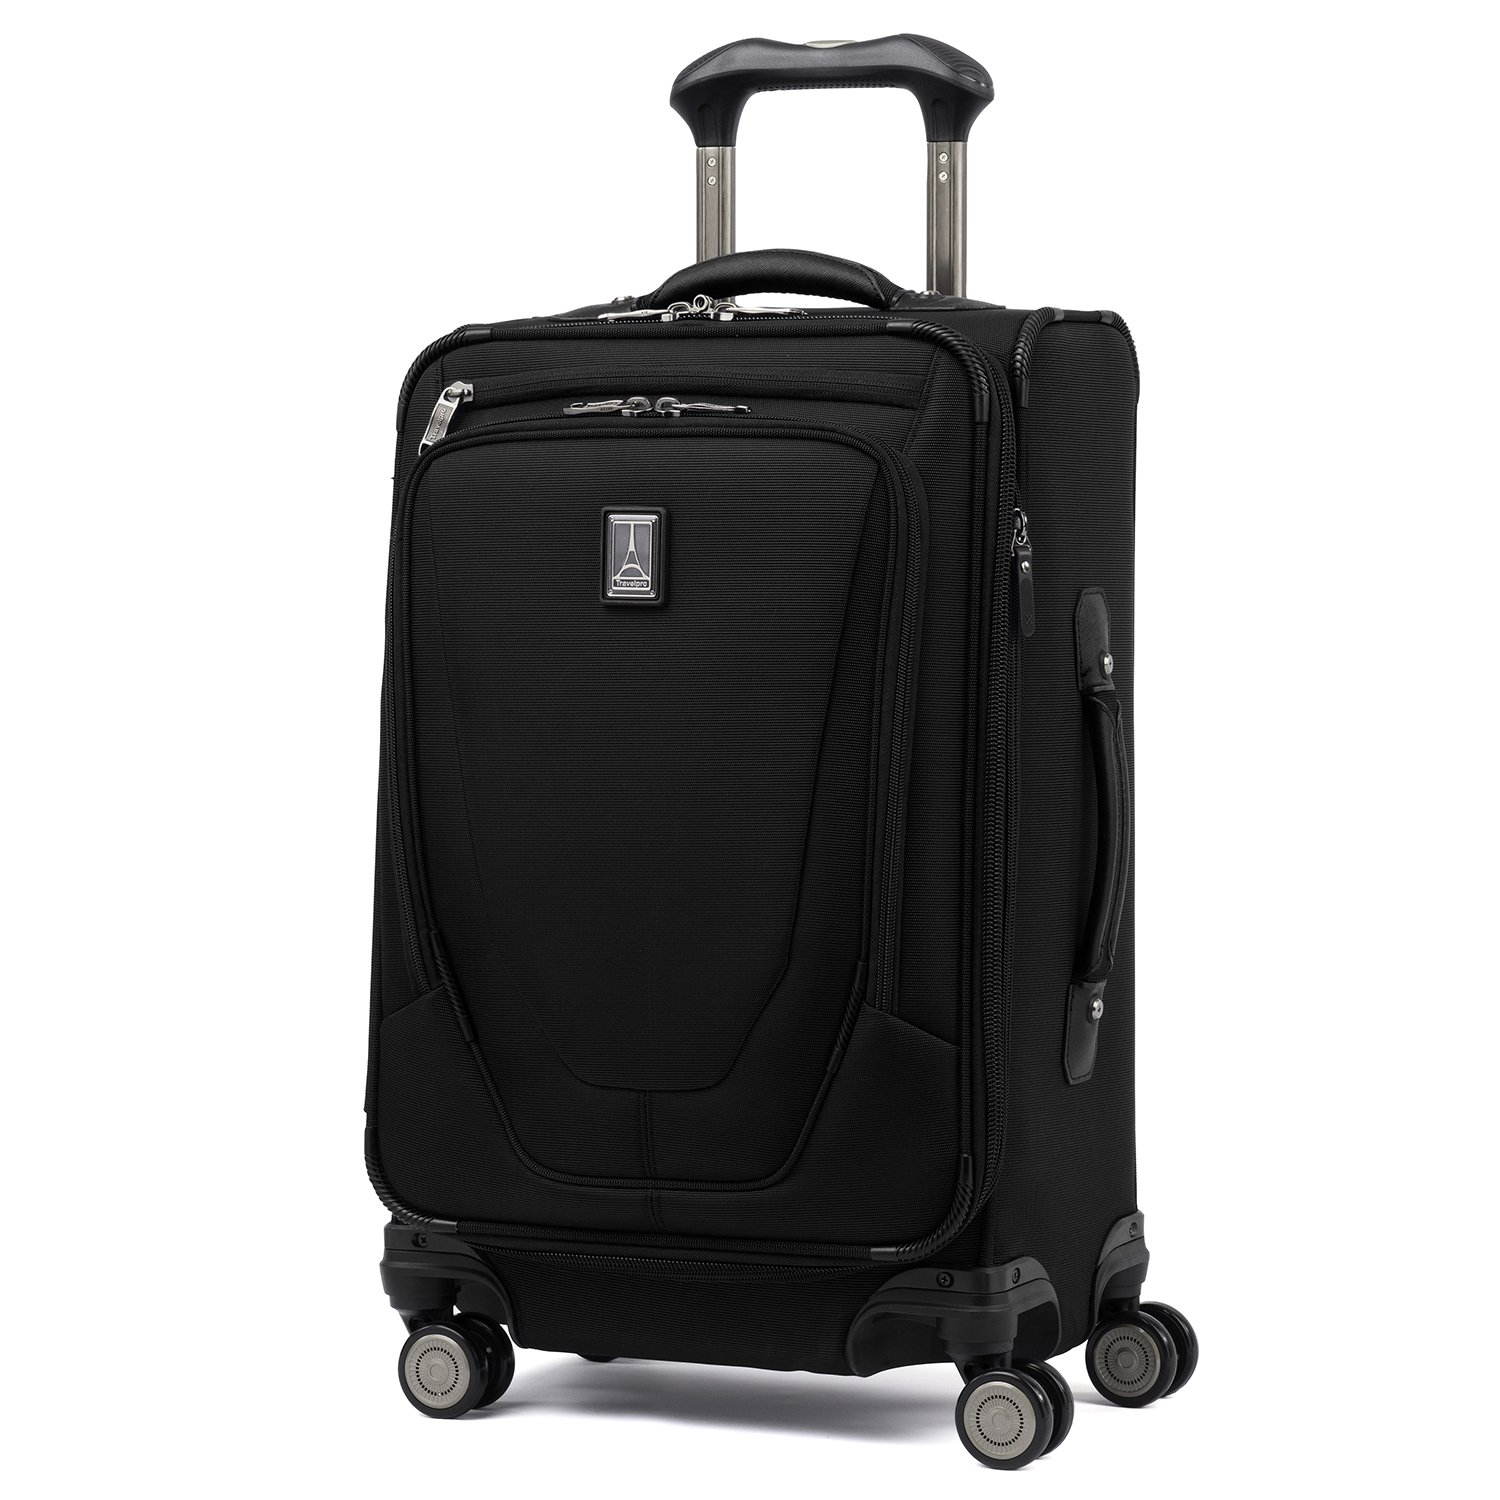 Travelpro Luggage Crew 11 21'' Carry-on Expandable Spinner w/Suiter and USB Port, Black